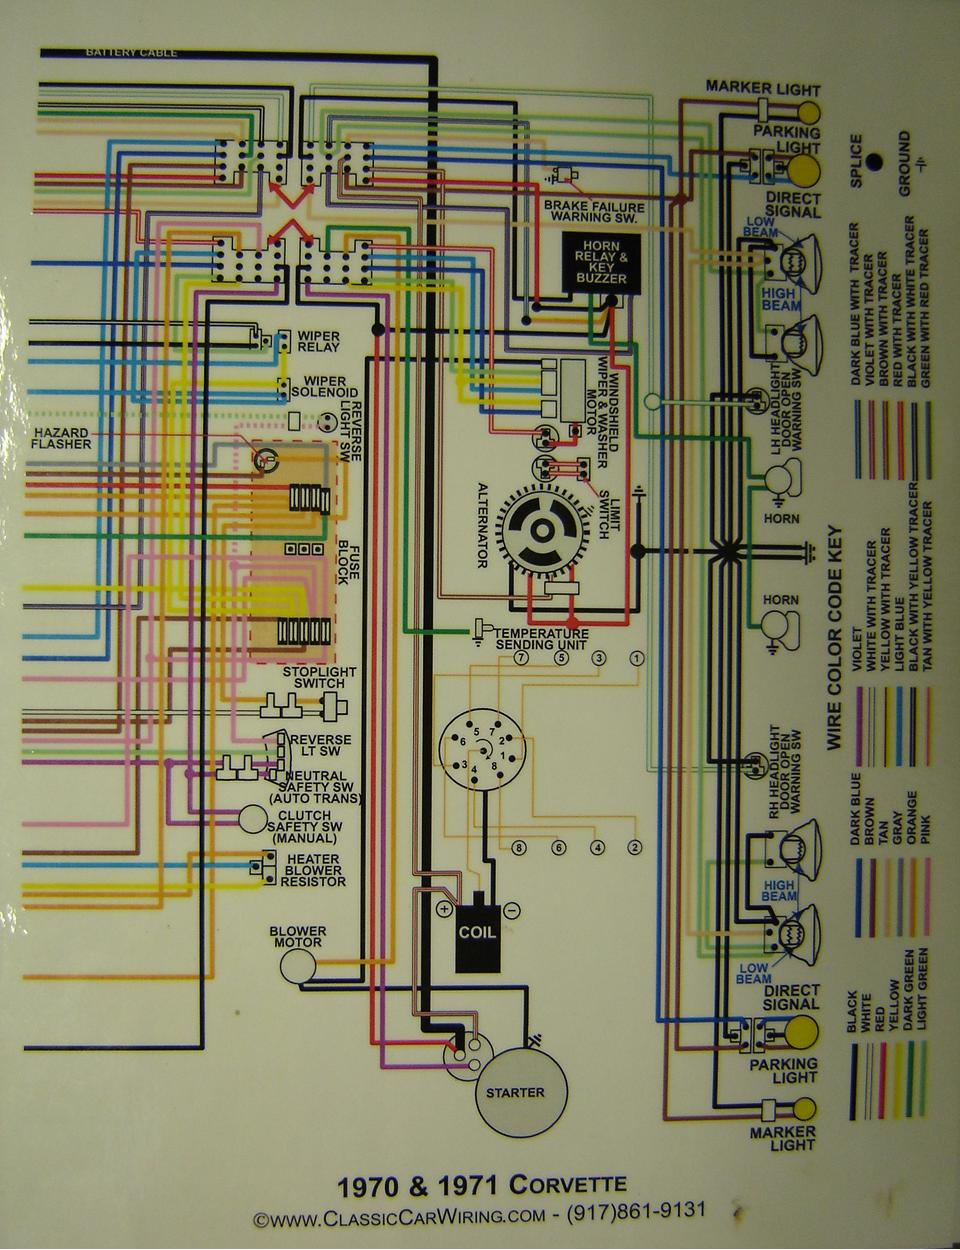 hight resolution of 74 corvette wiring diagram just another wiring diagram blog u2022 rh aesar store 1968 corvette engine wiring harness 1970 corvette wiring diagram